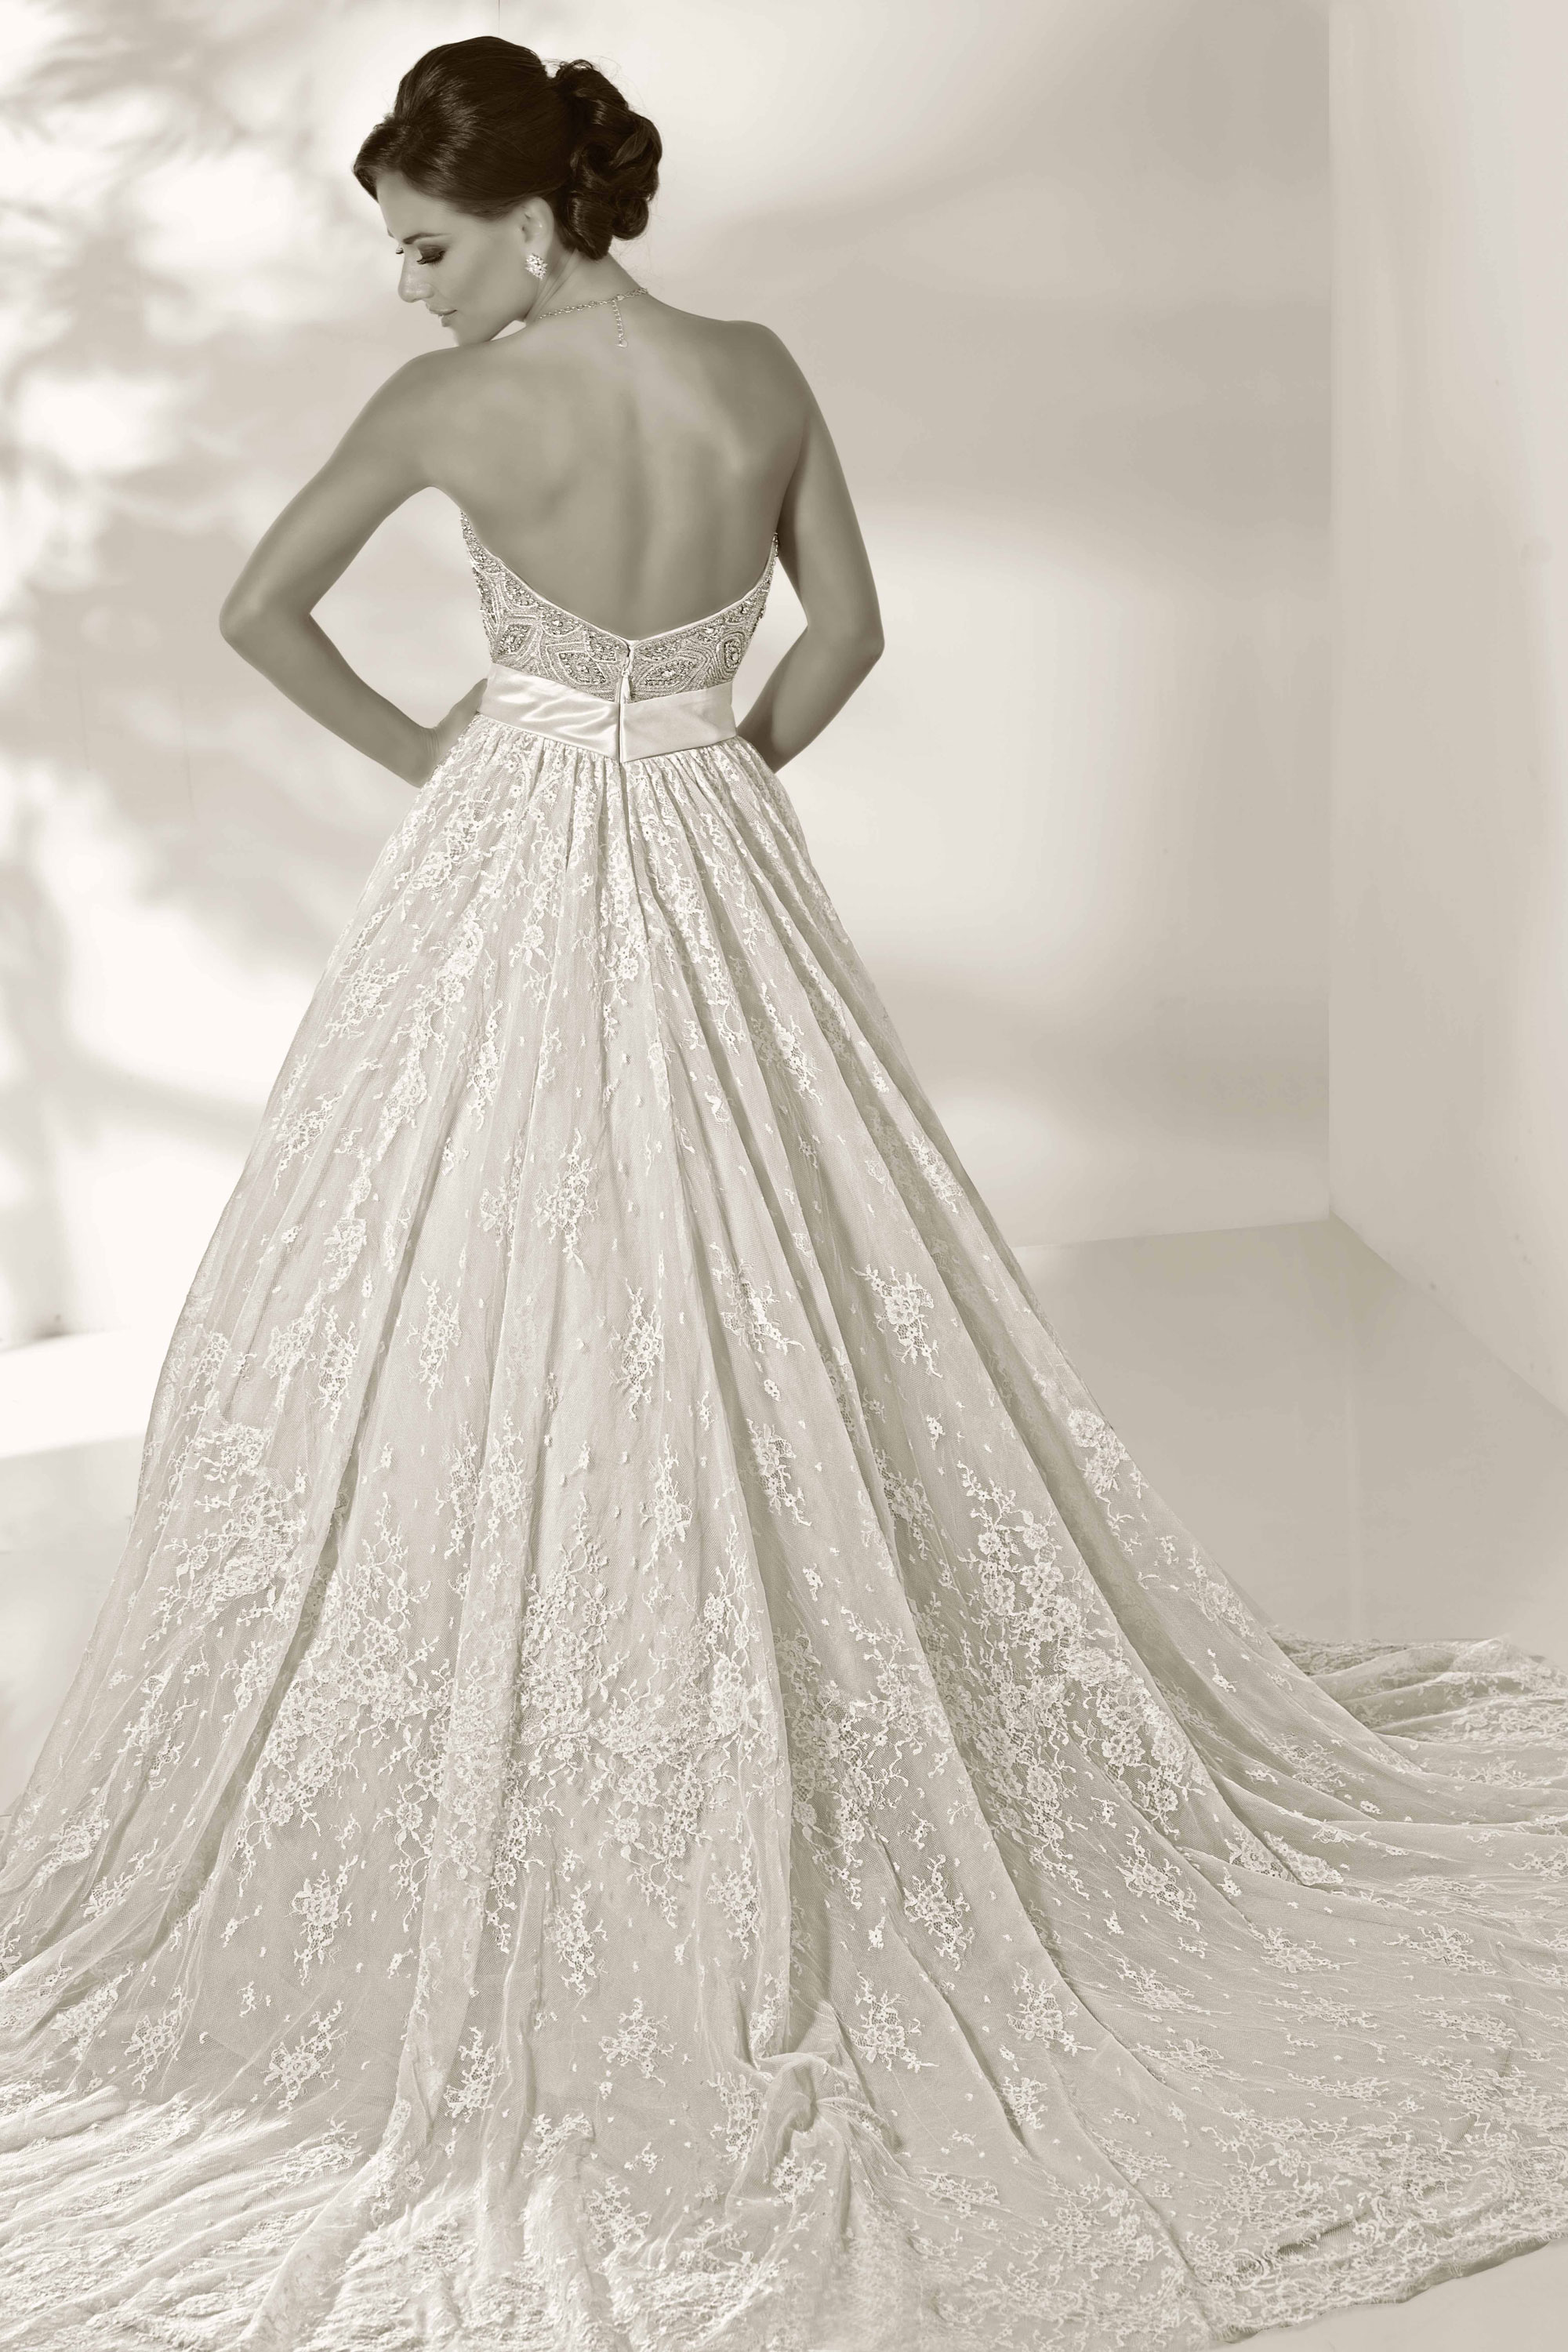 cristiano-lucci-wedding-dresses-6-01052014